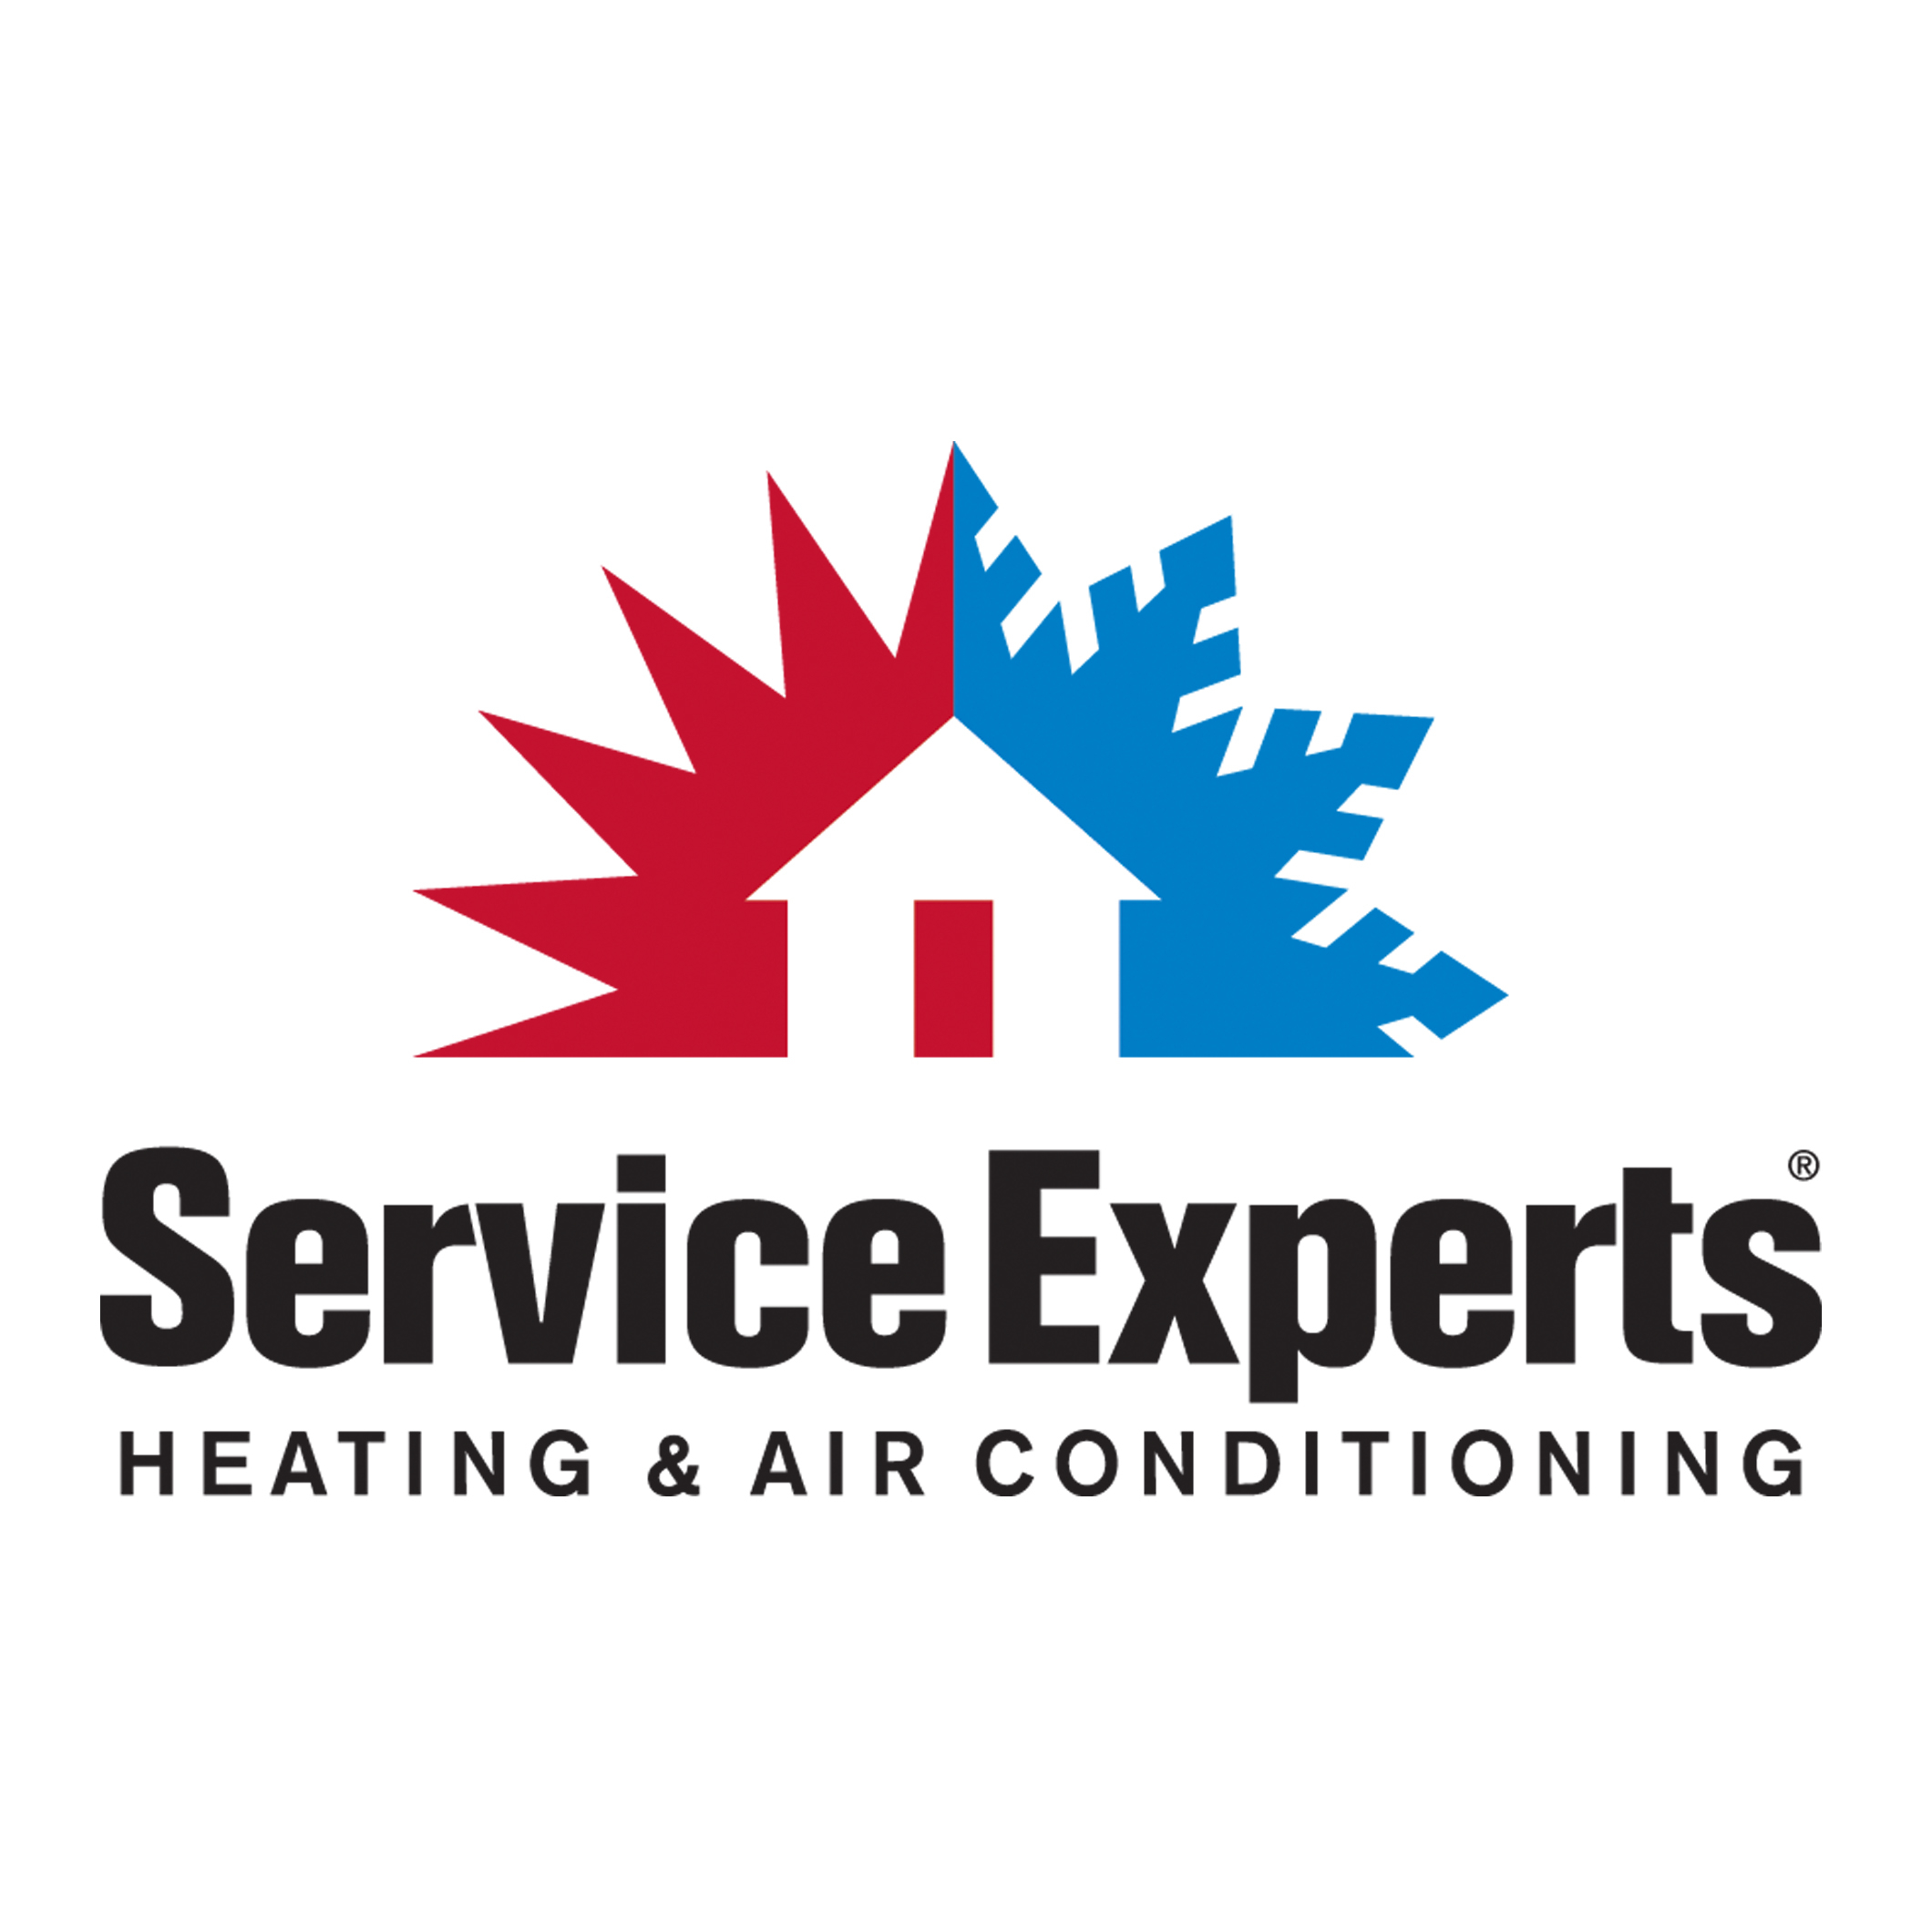 Service Experts Heating & Air Conditioning - ad image